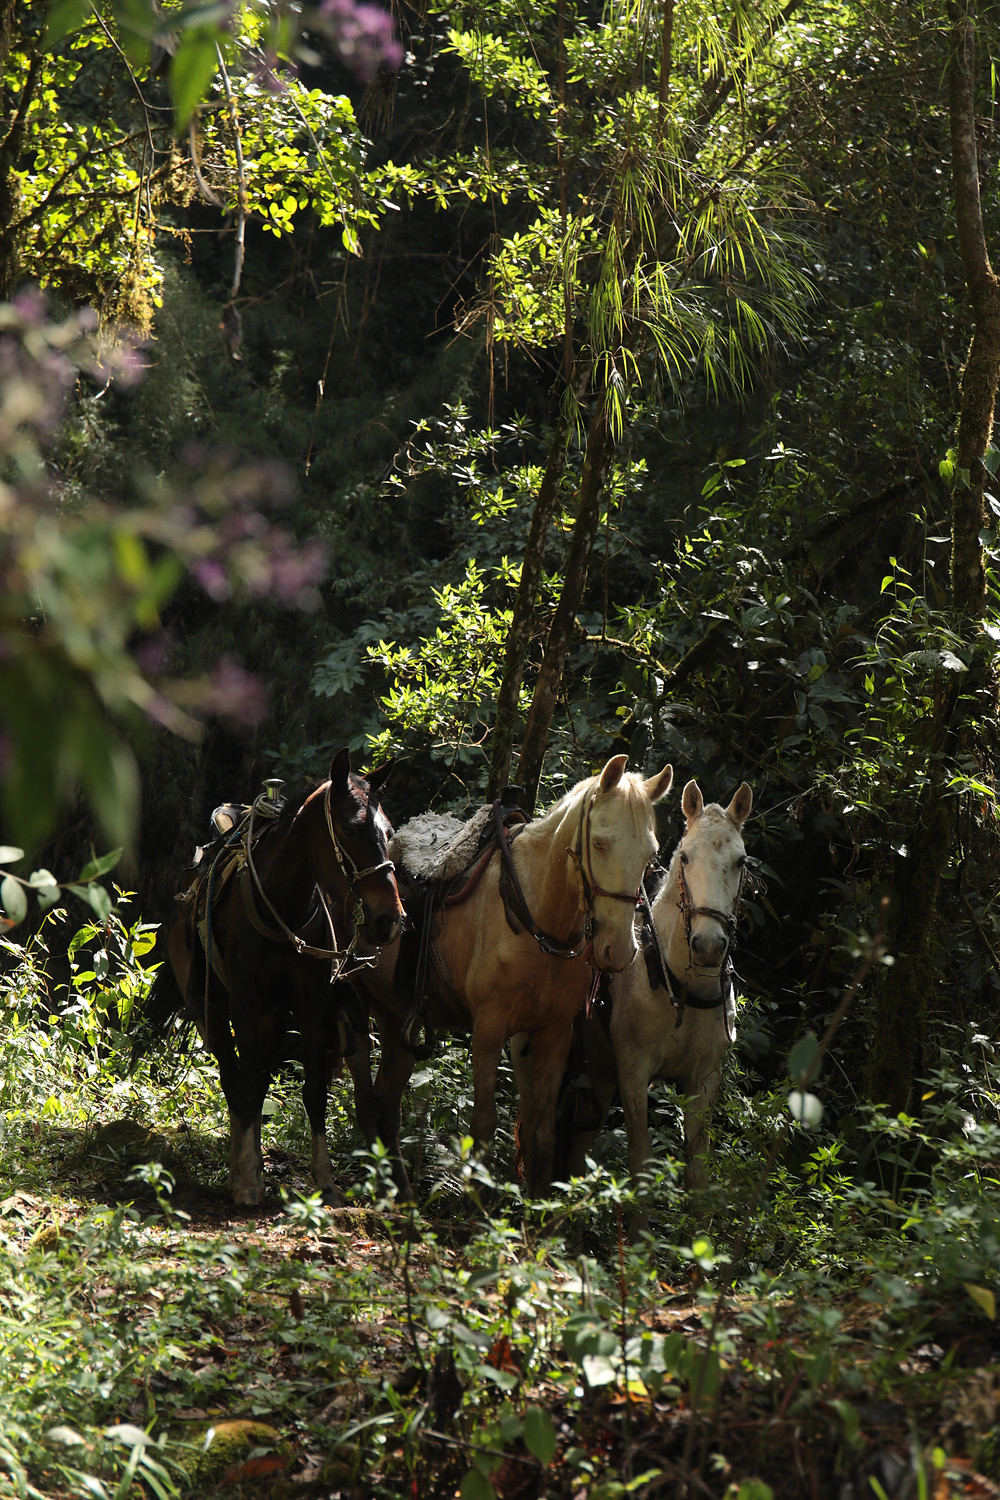 Horses waiting in the jungle in Jardin, Colombia.